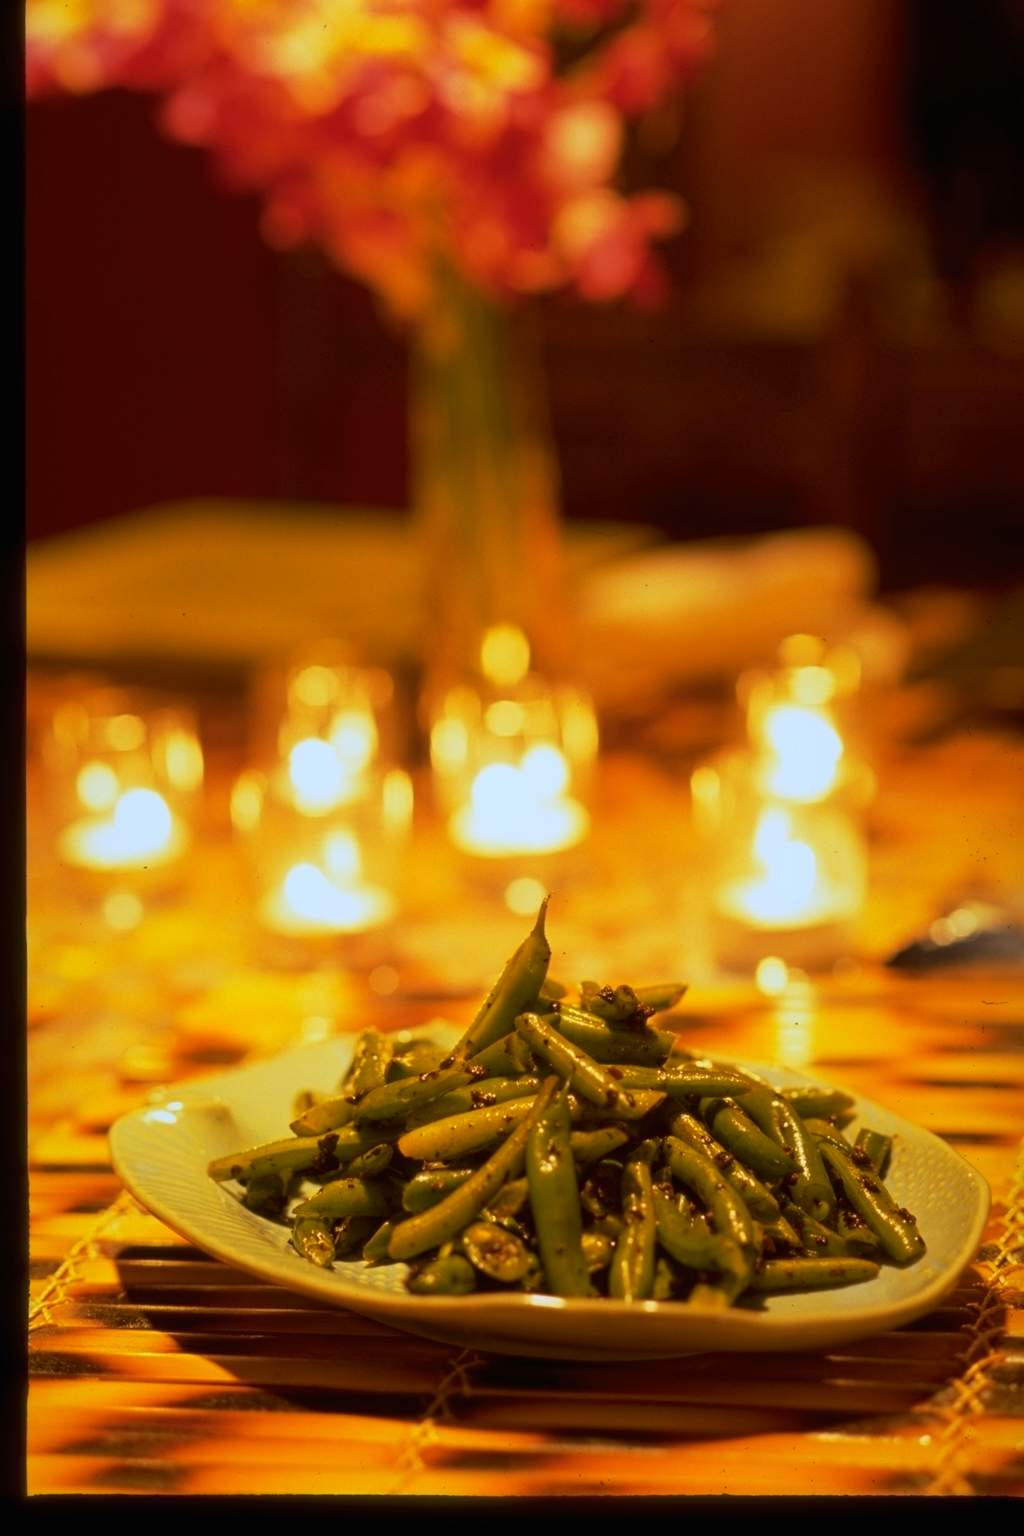 Stir Fried Green Beans with Chinese Preserved Black Beans